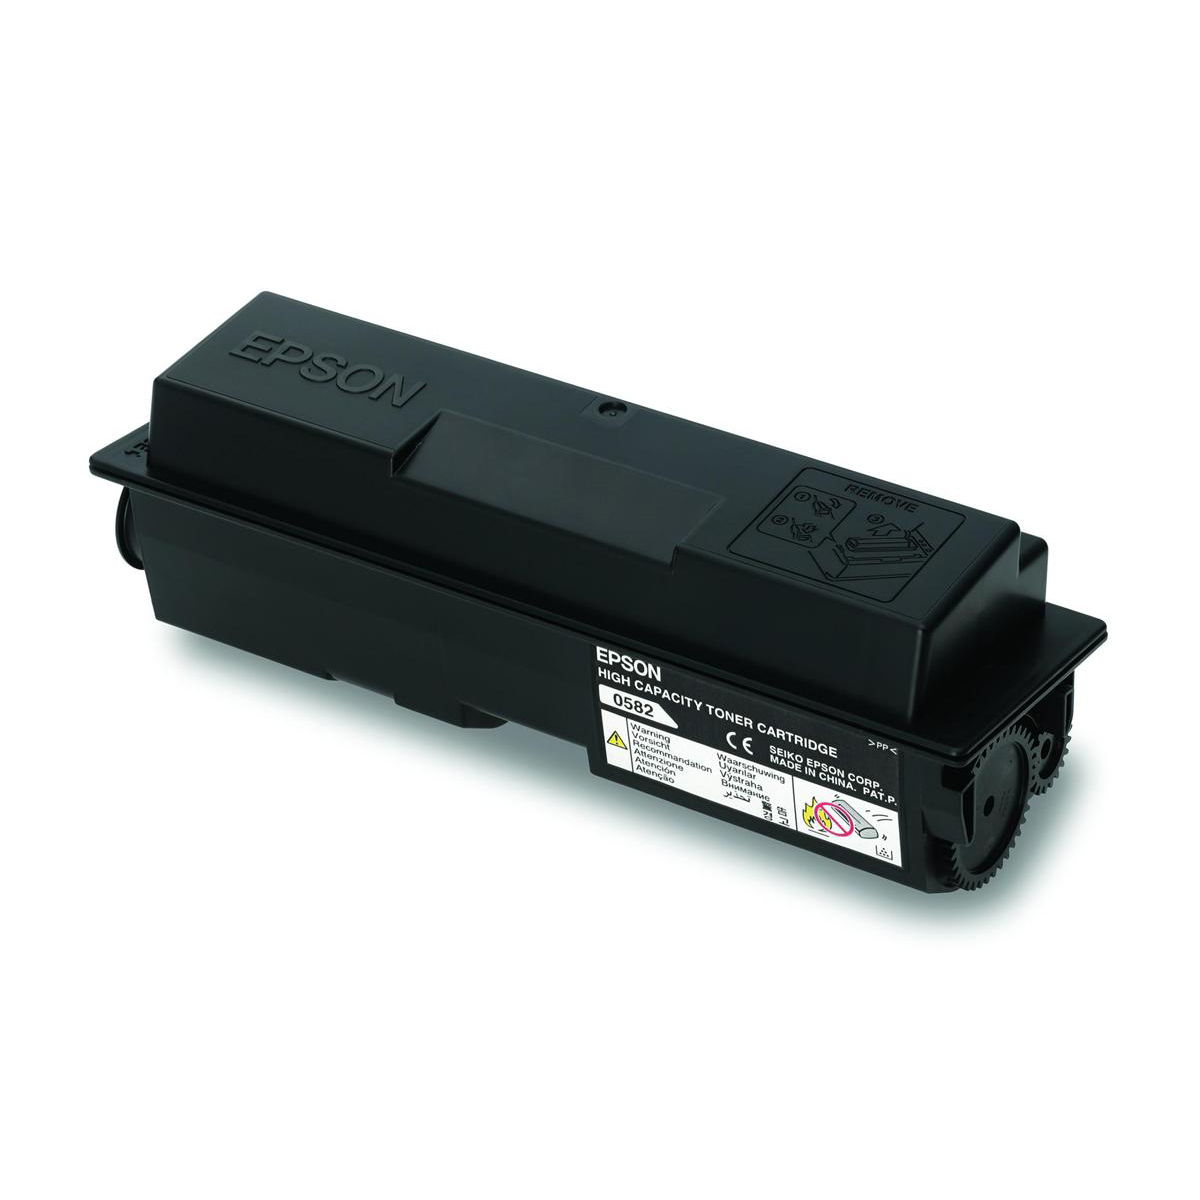 Epson 0584 High Capacity Toner Cartridge Yield 8000 Pages Black Ref C13S050584 *3 to 5 Day Leadtime*